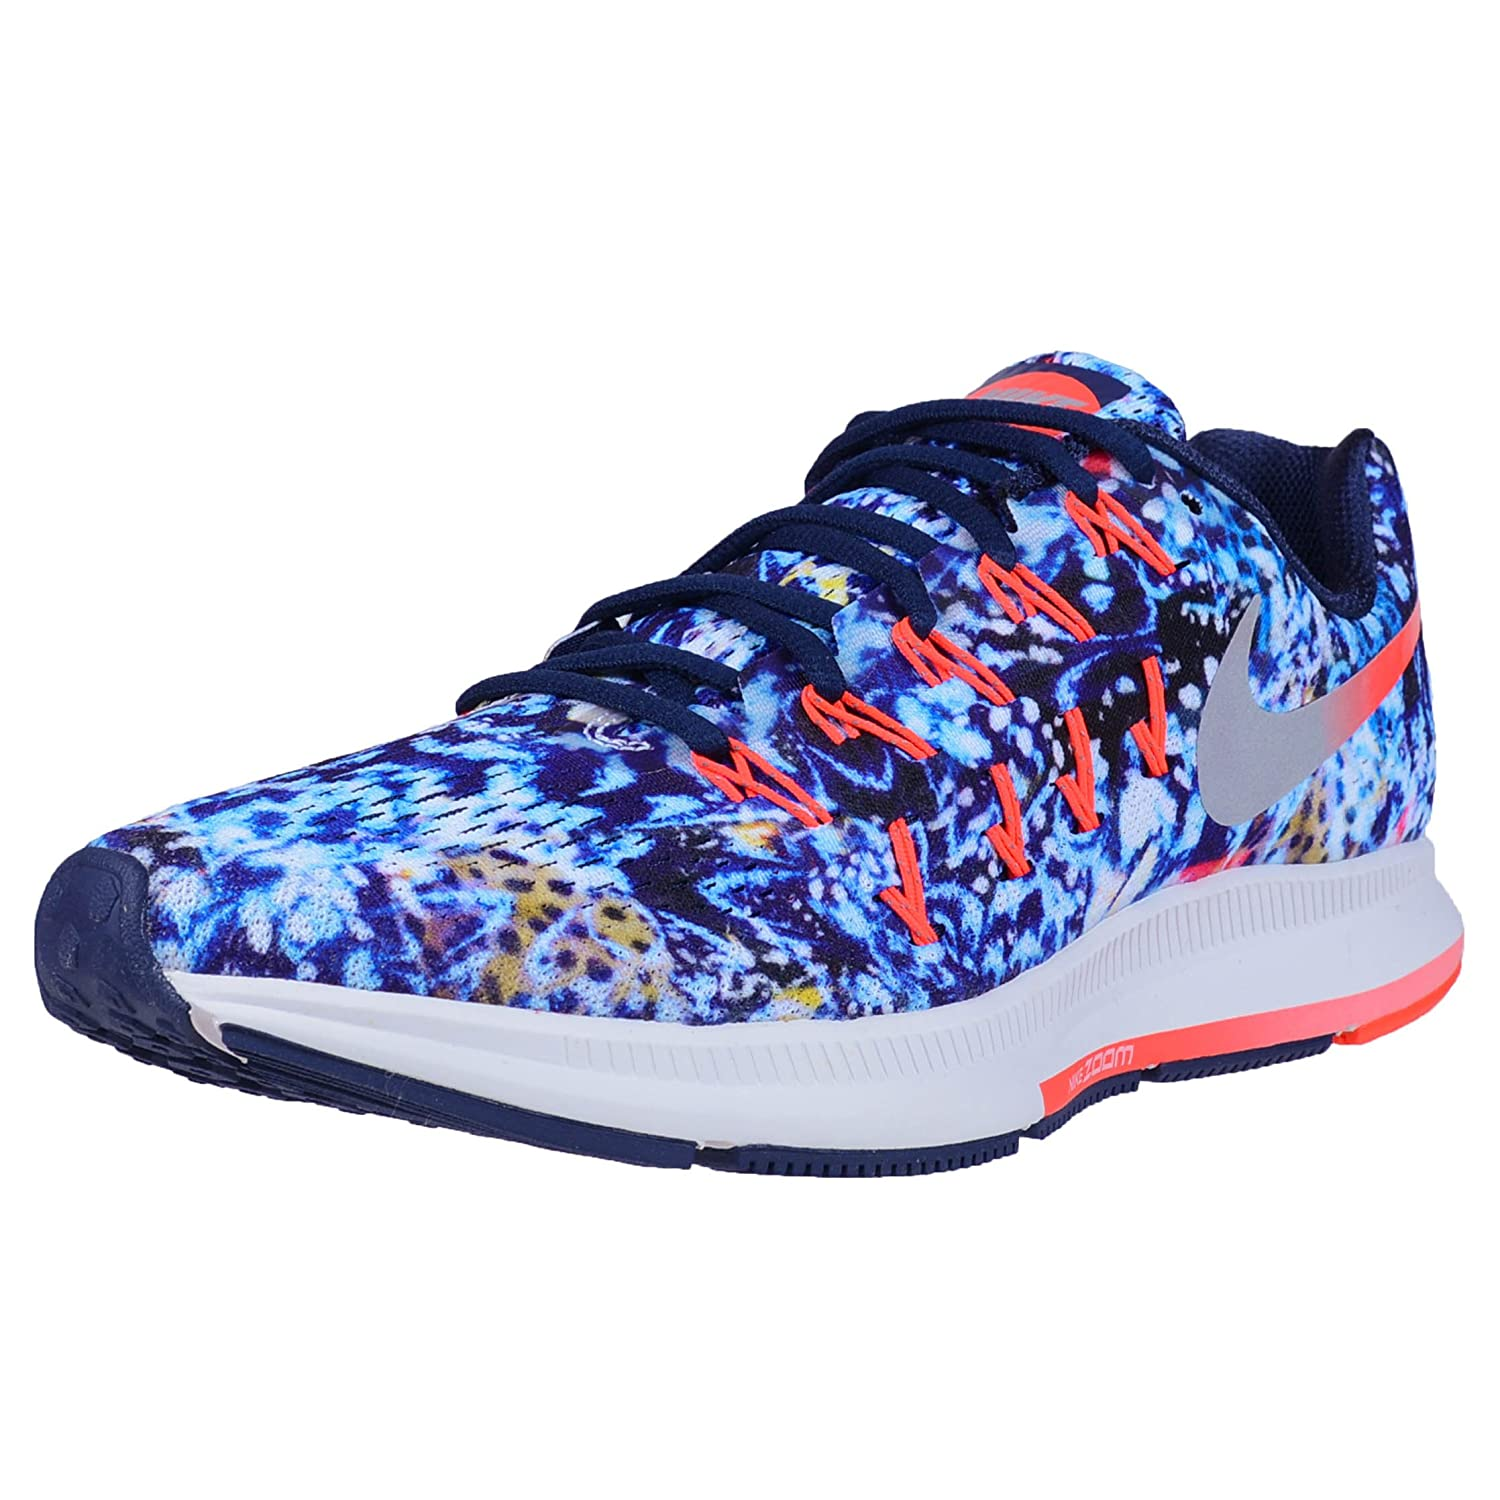 nike pegasus zoom 33 men's